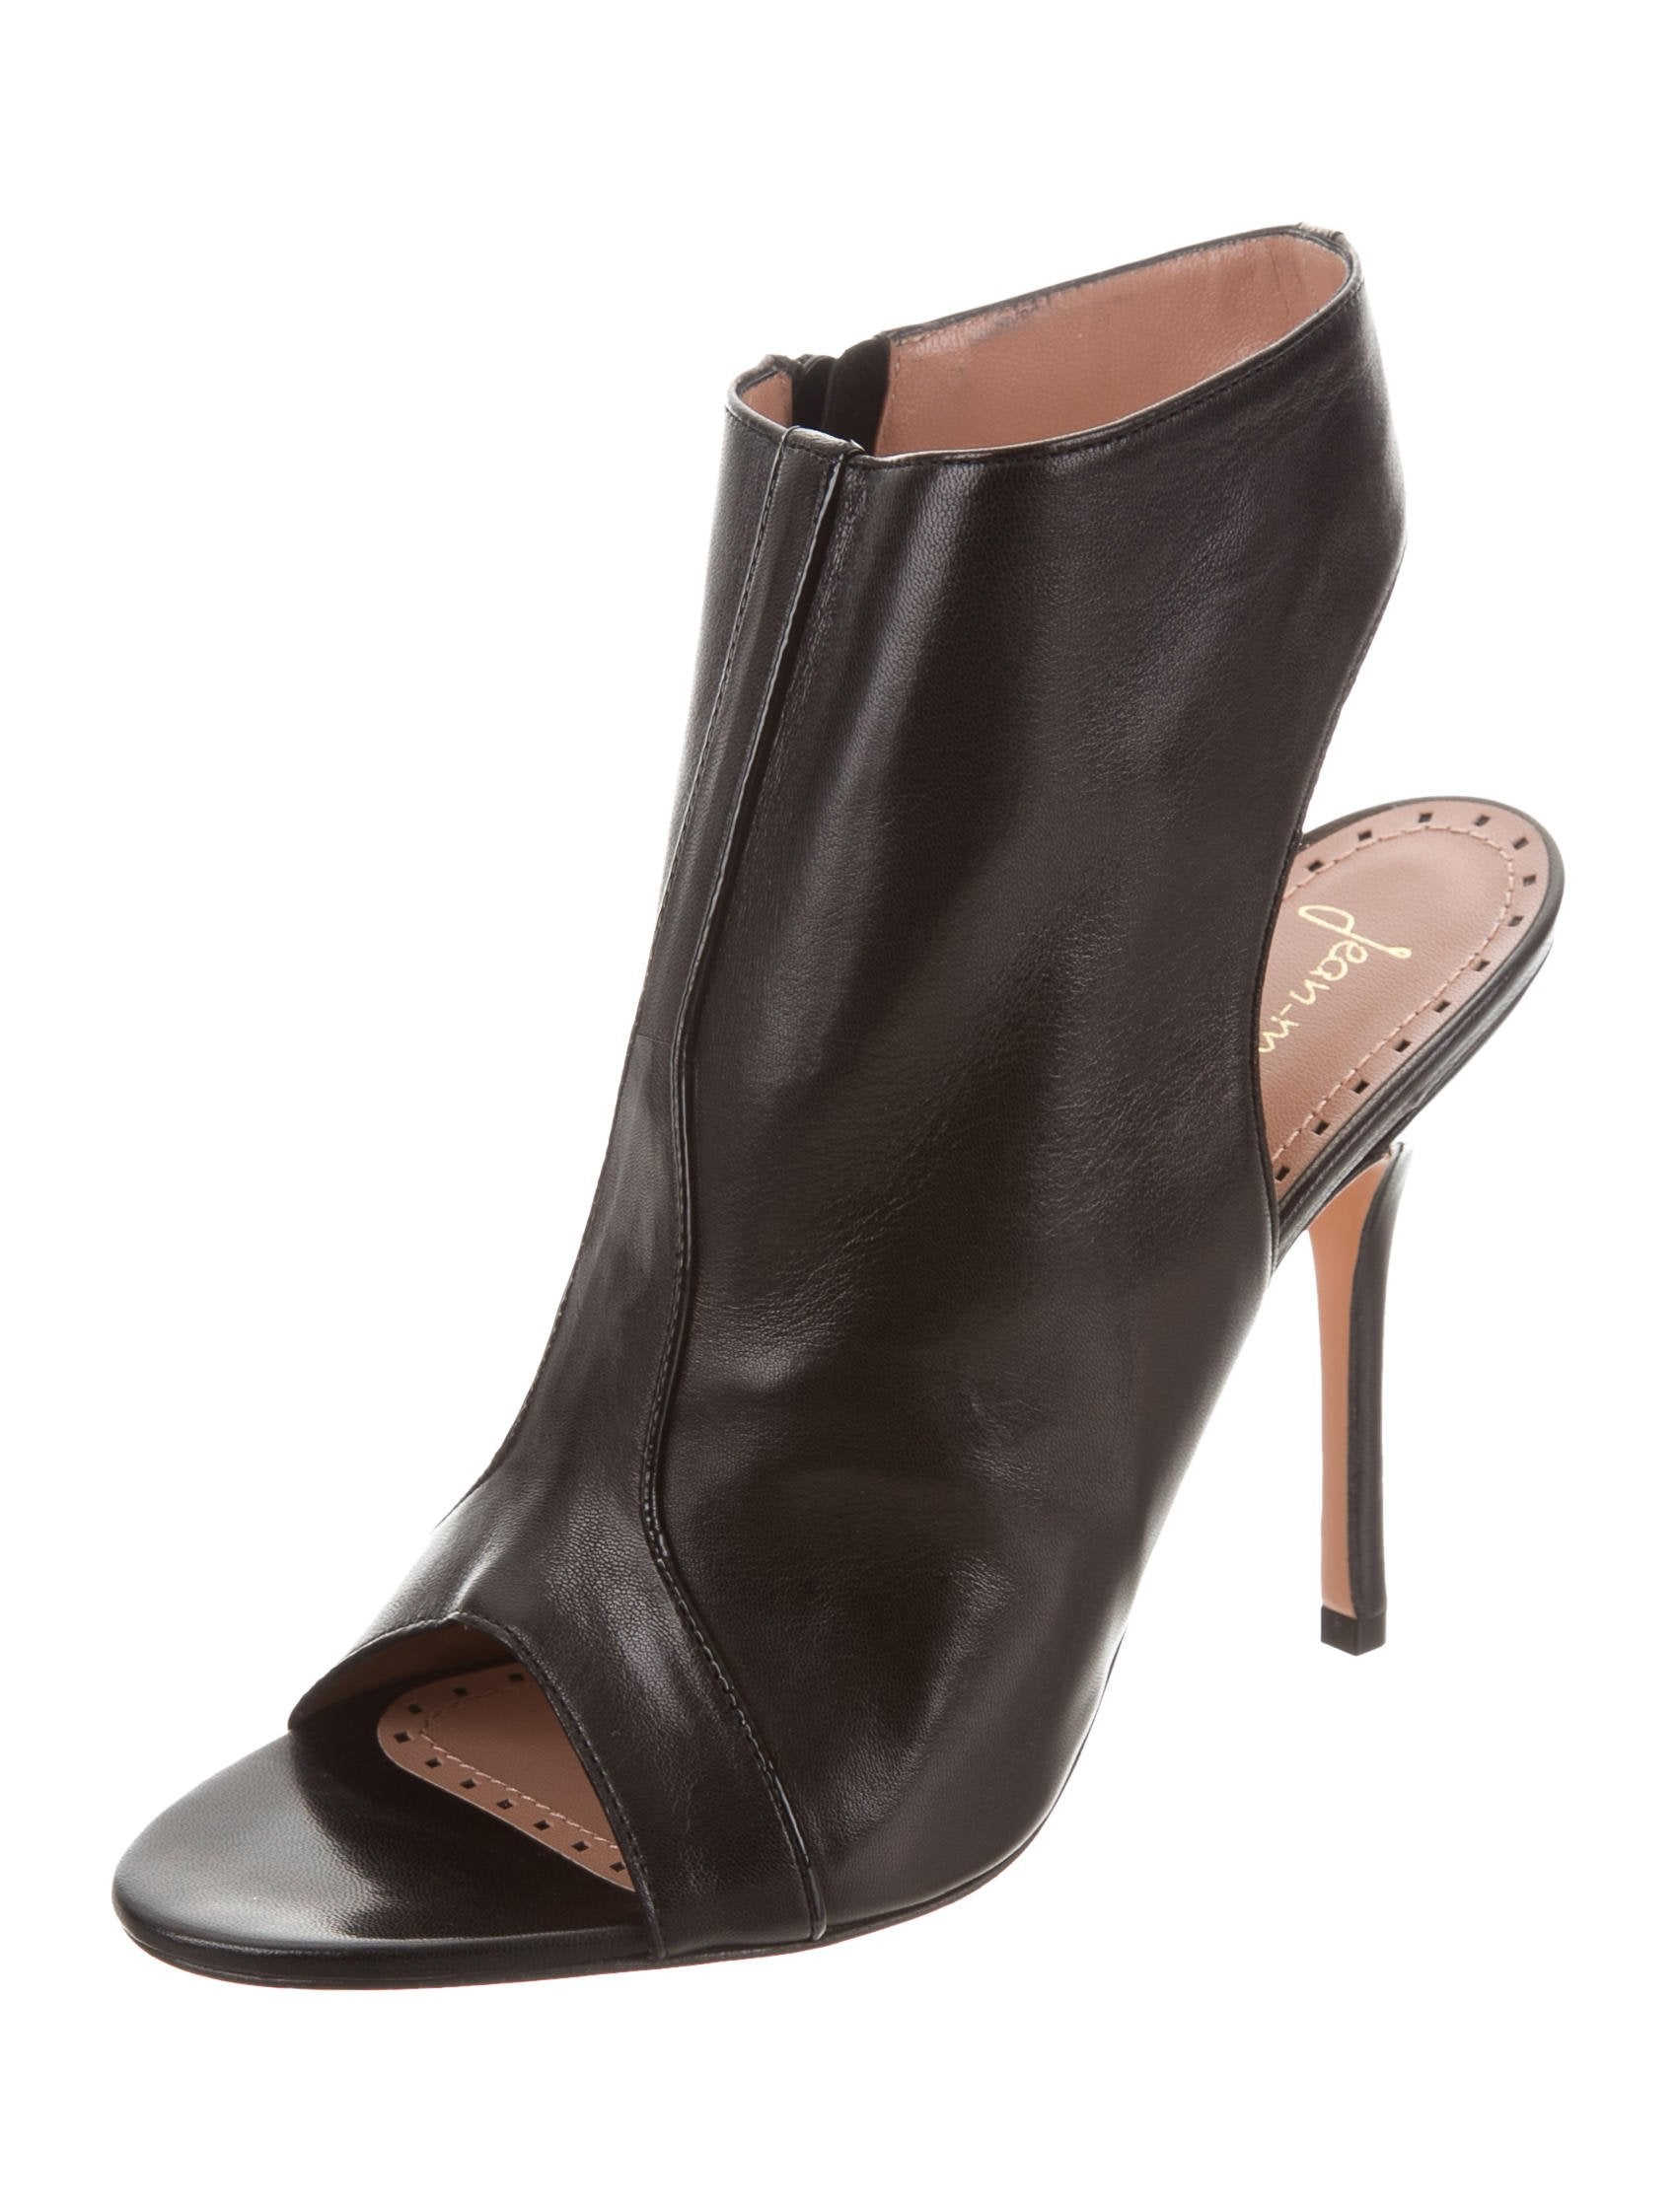 Jean-Michel Cazabat Ophelia Peep-Toe Booties w/ Tags footlocker pictures for sale SPYOLqot9i